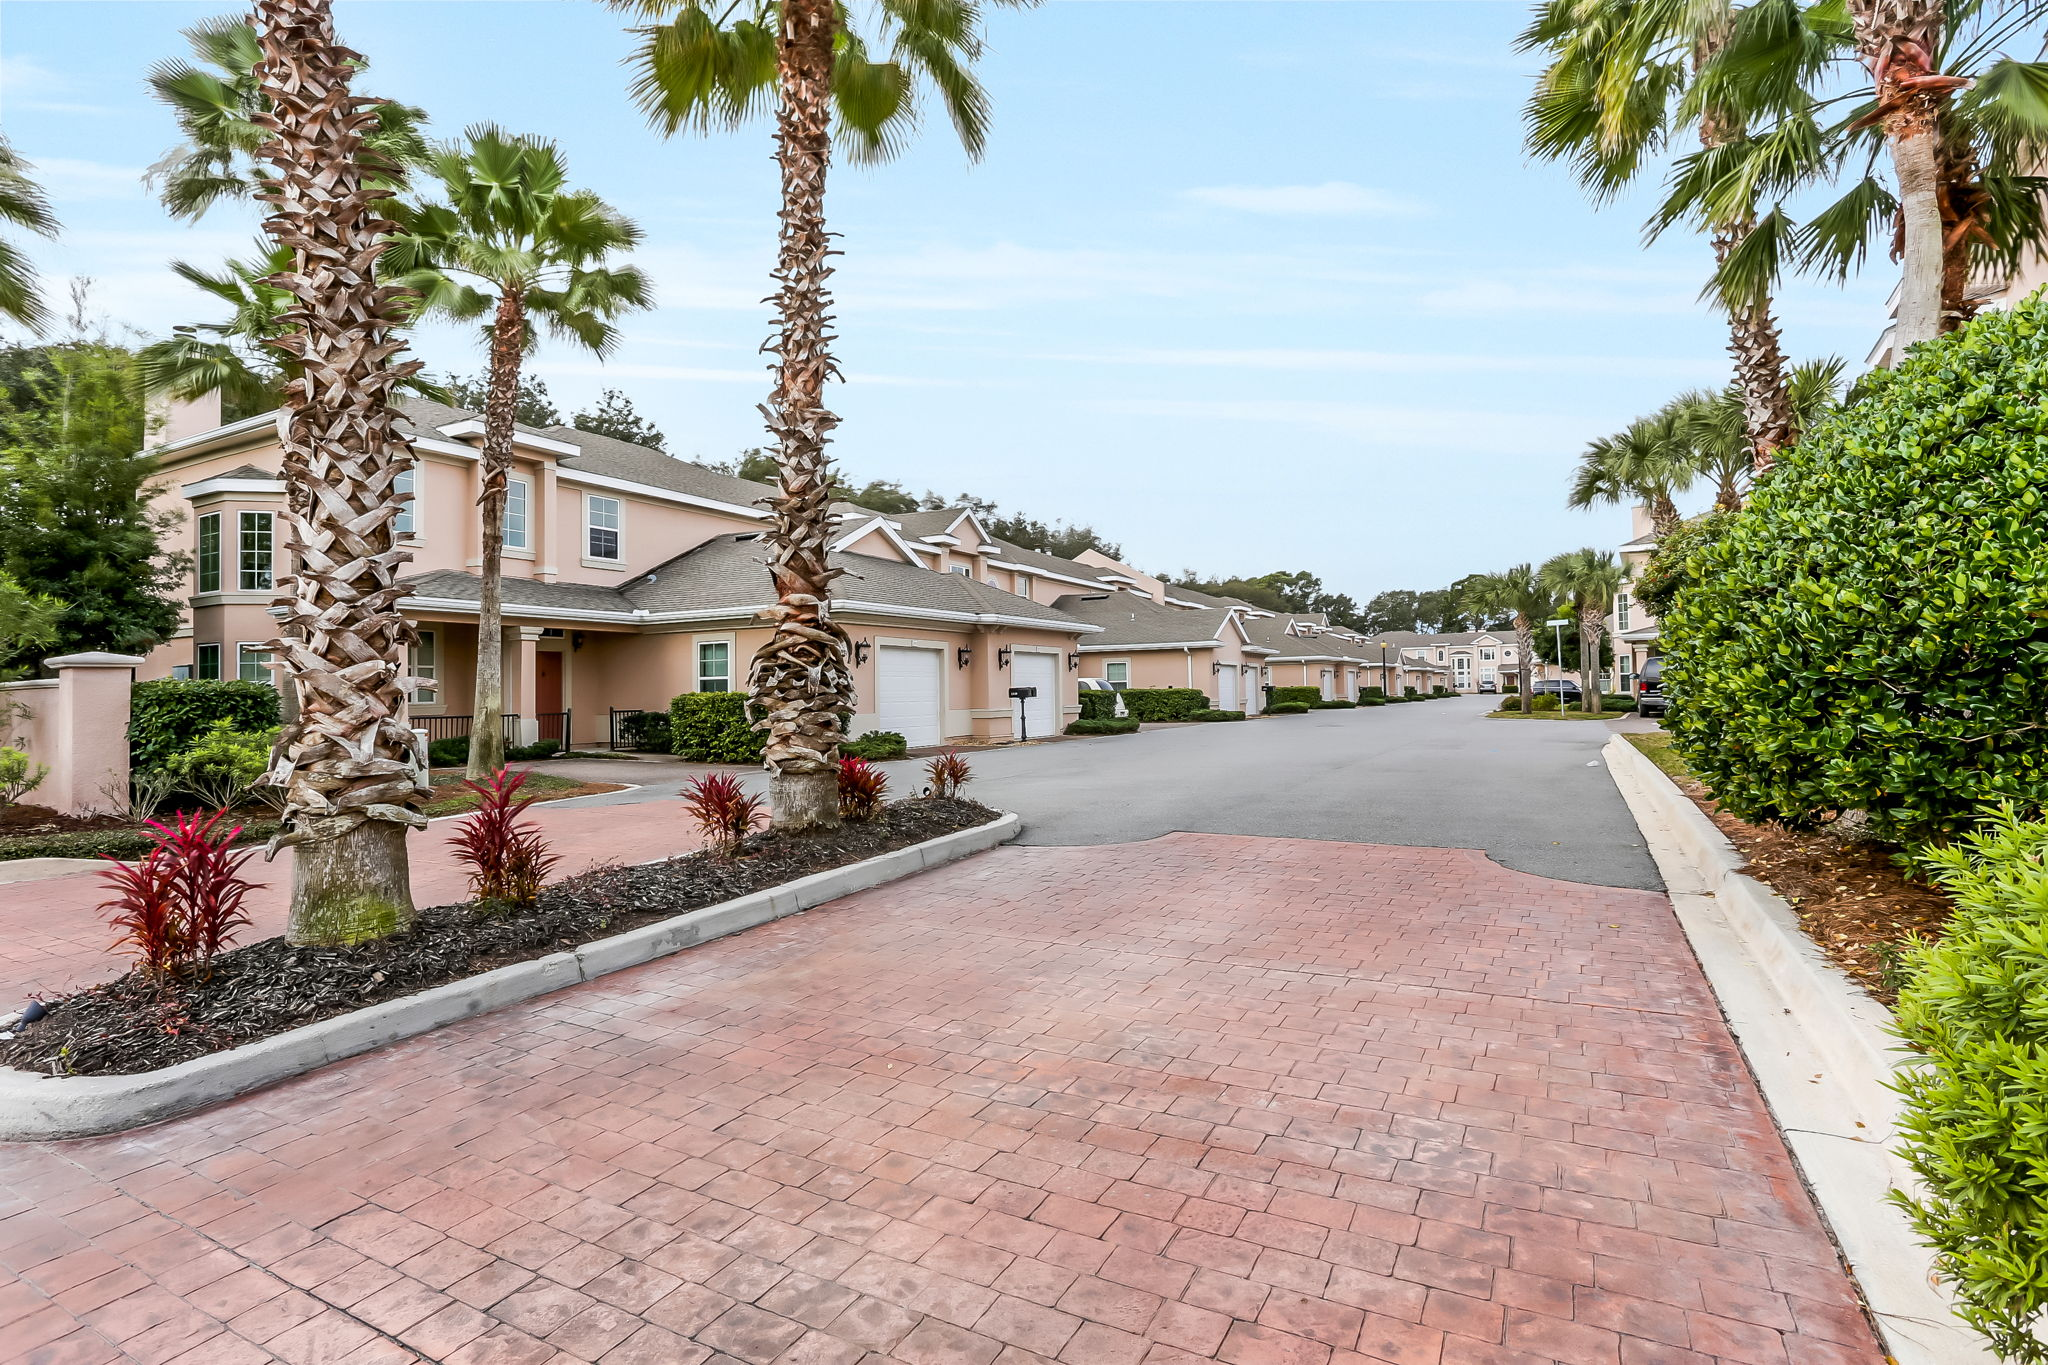 Well landscaped grounds are included in the low HOA fee